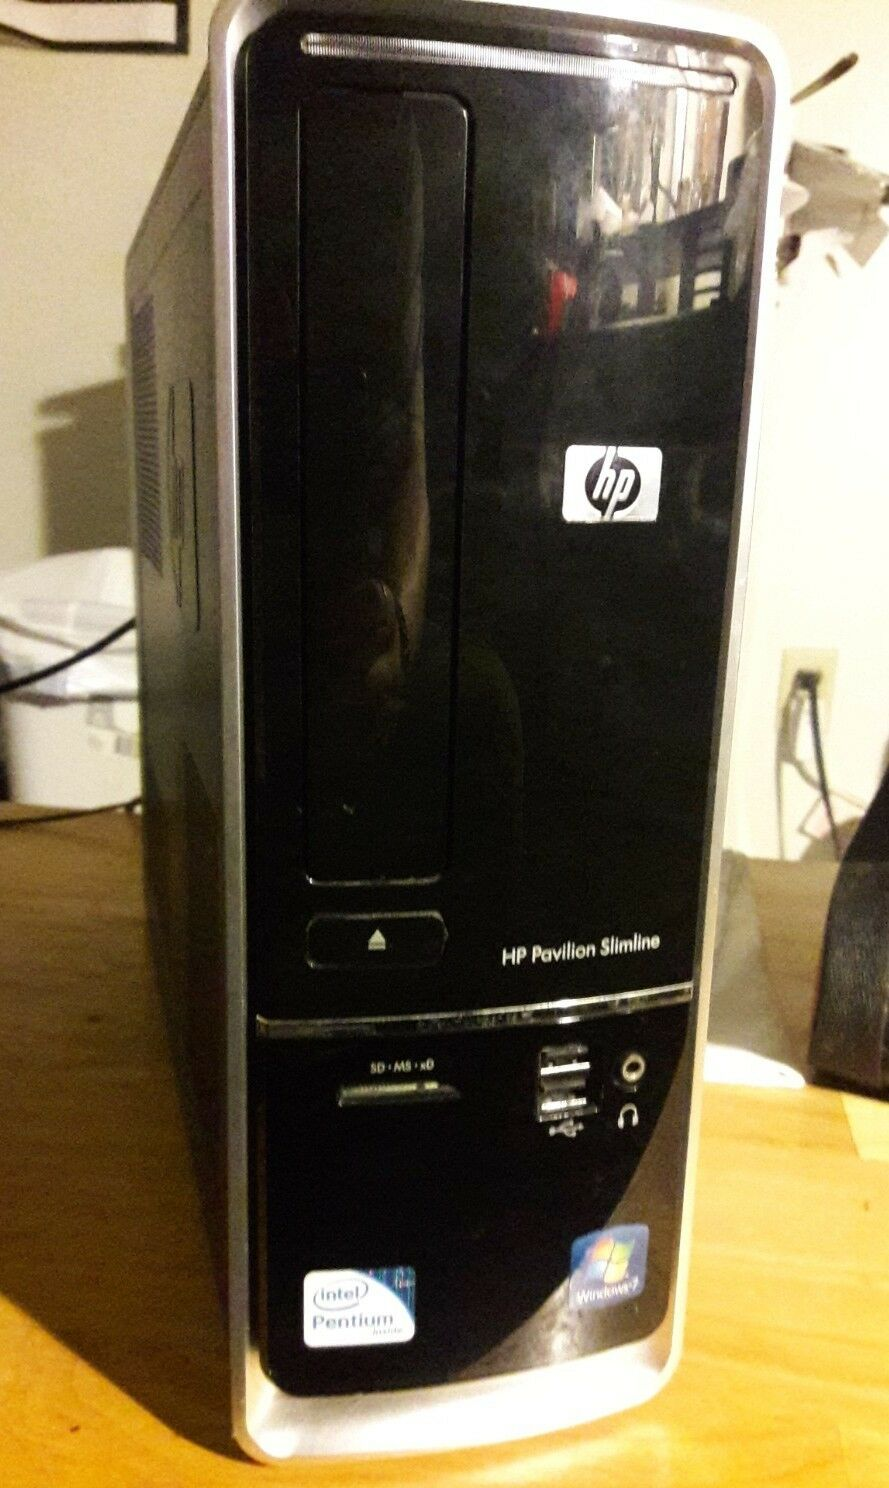 HP Pavilion Slimline s5000 w/ Moniter included 1 of 8Only 1 available ...